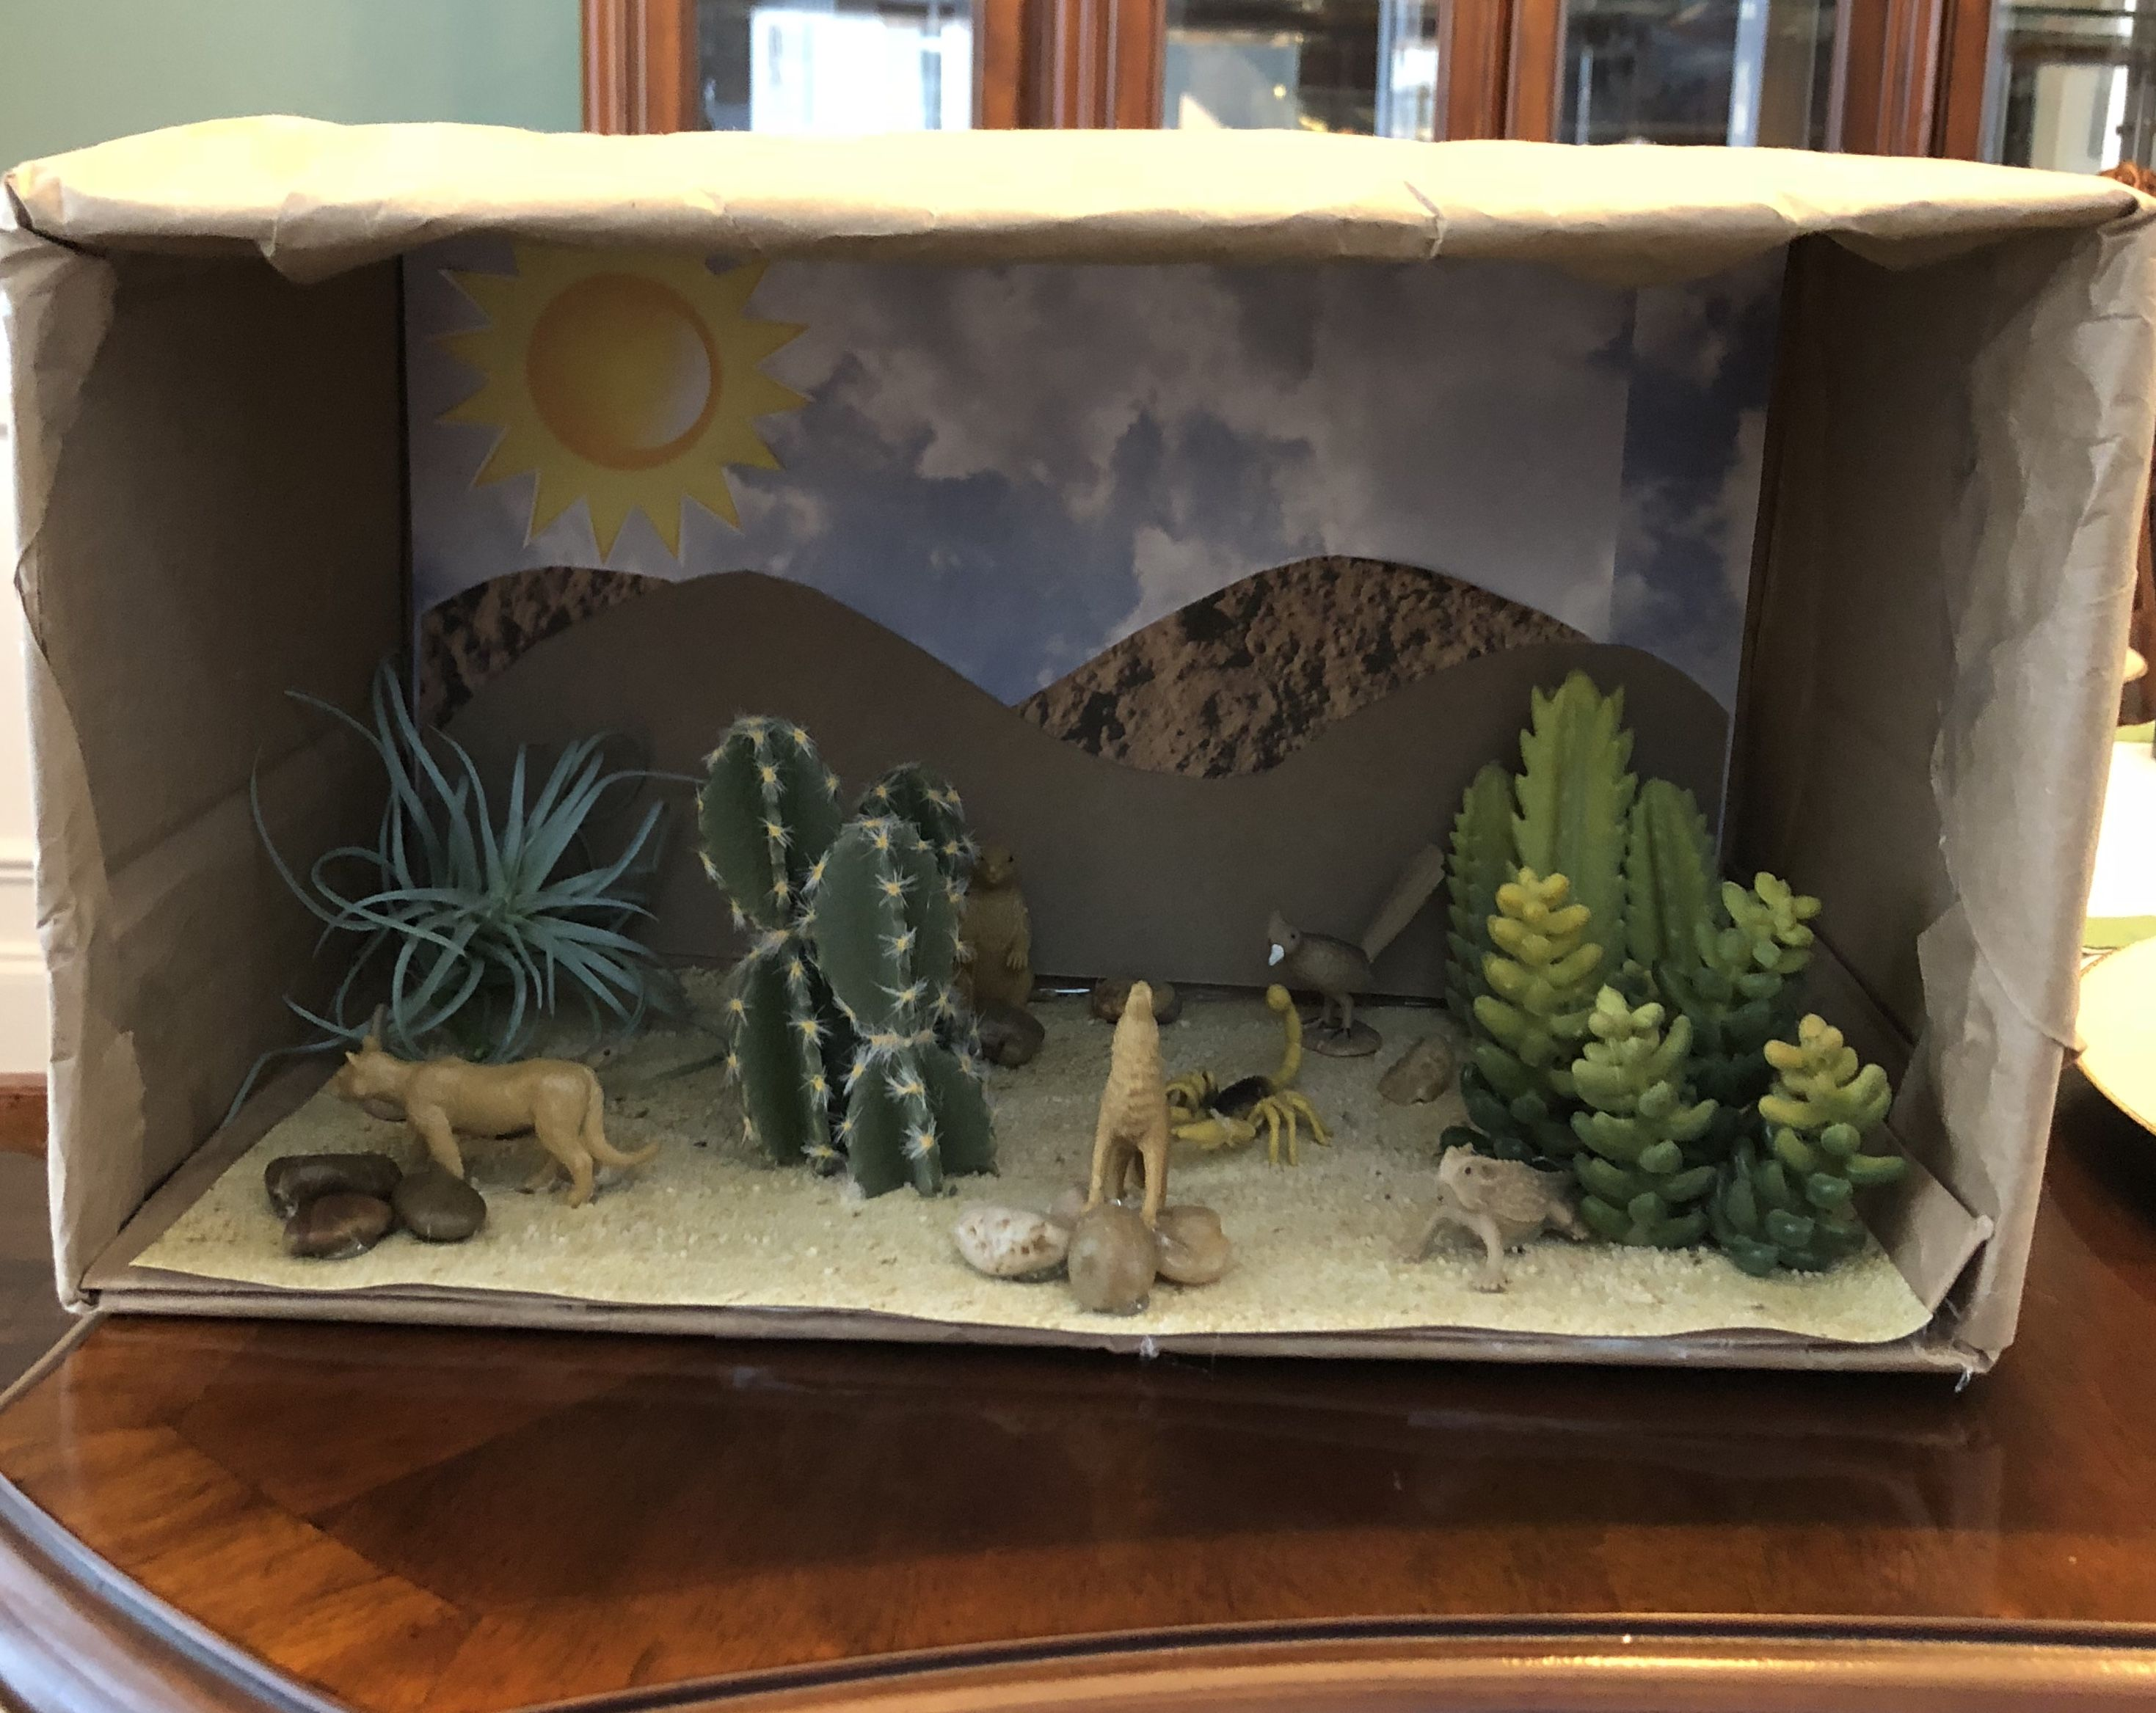 Desert Biome Project